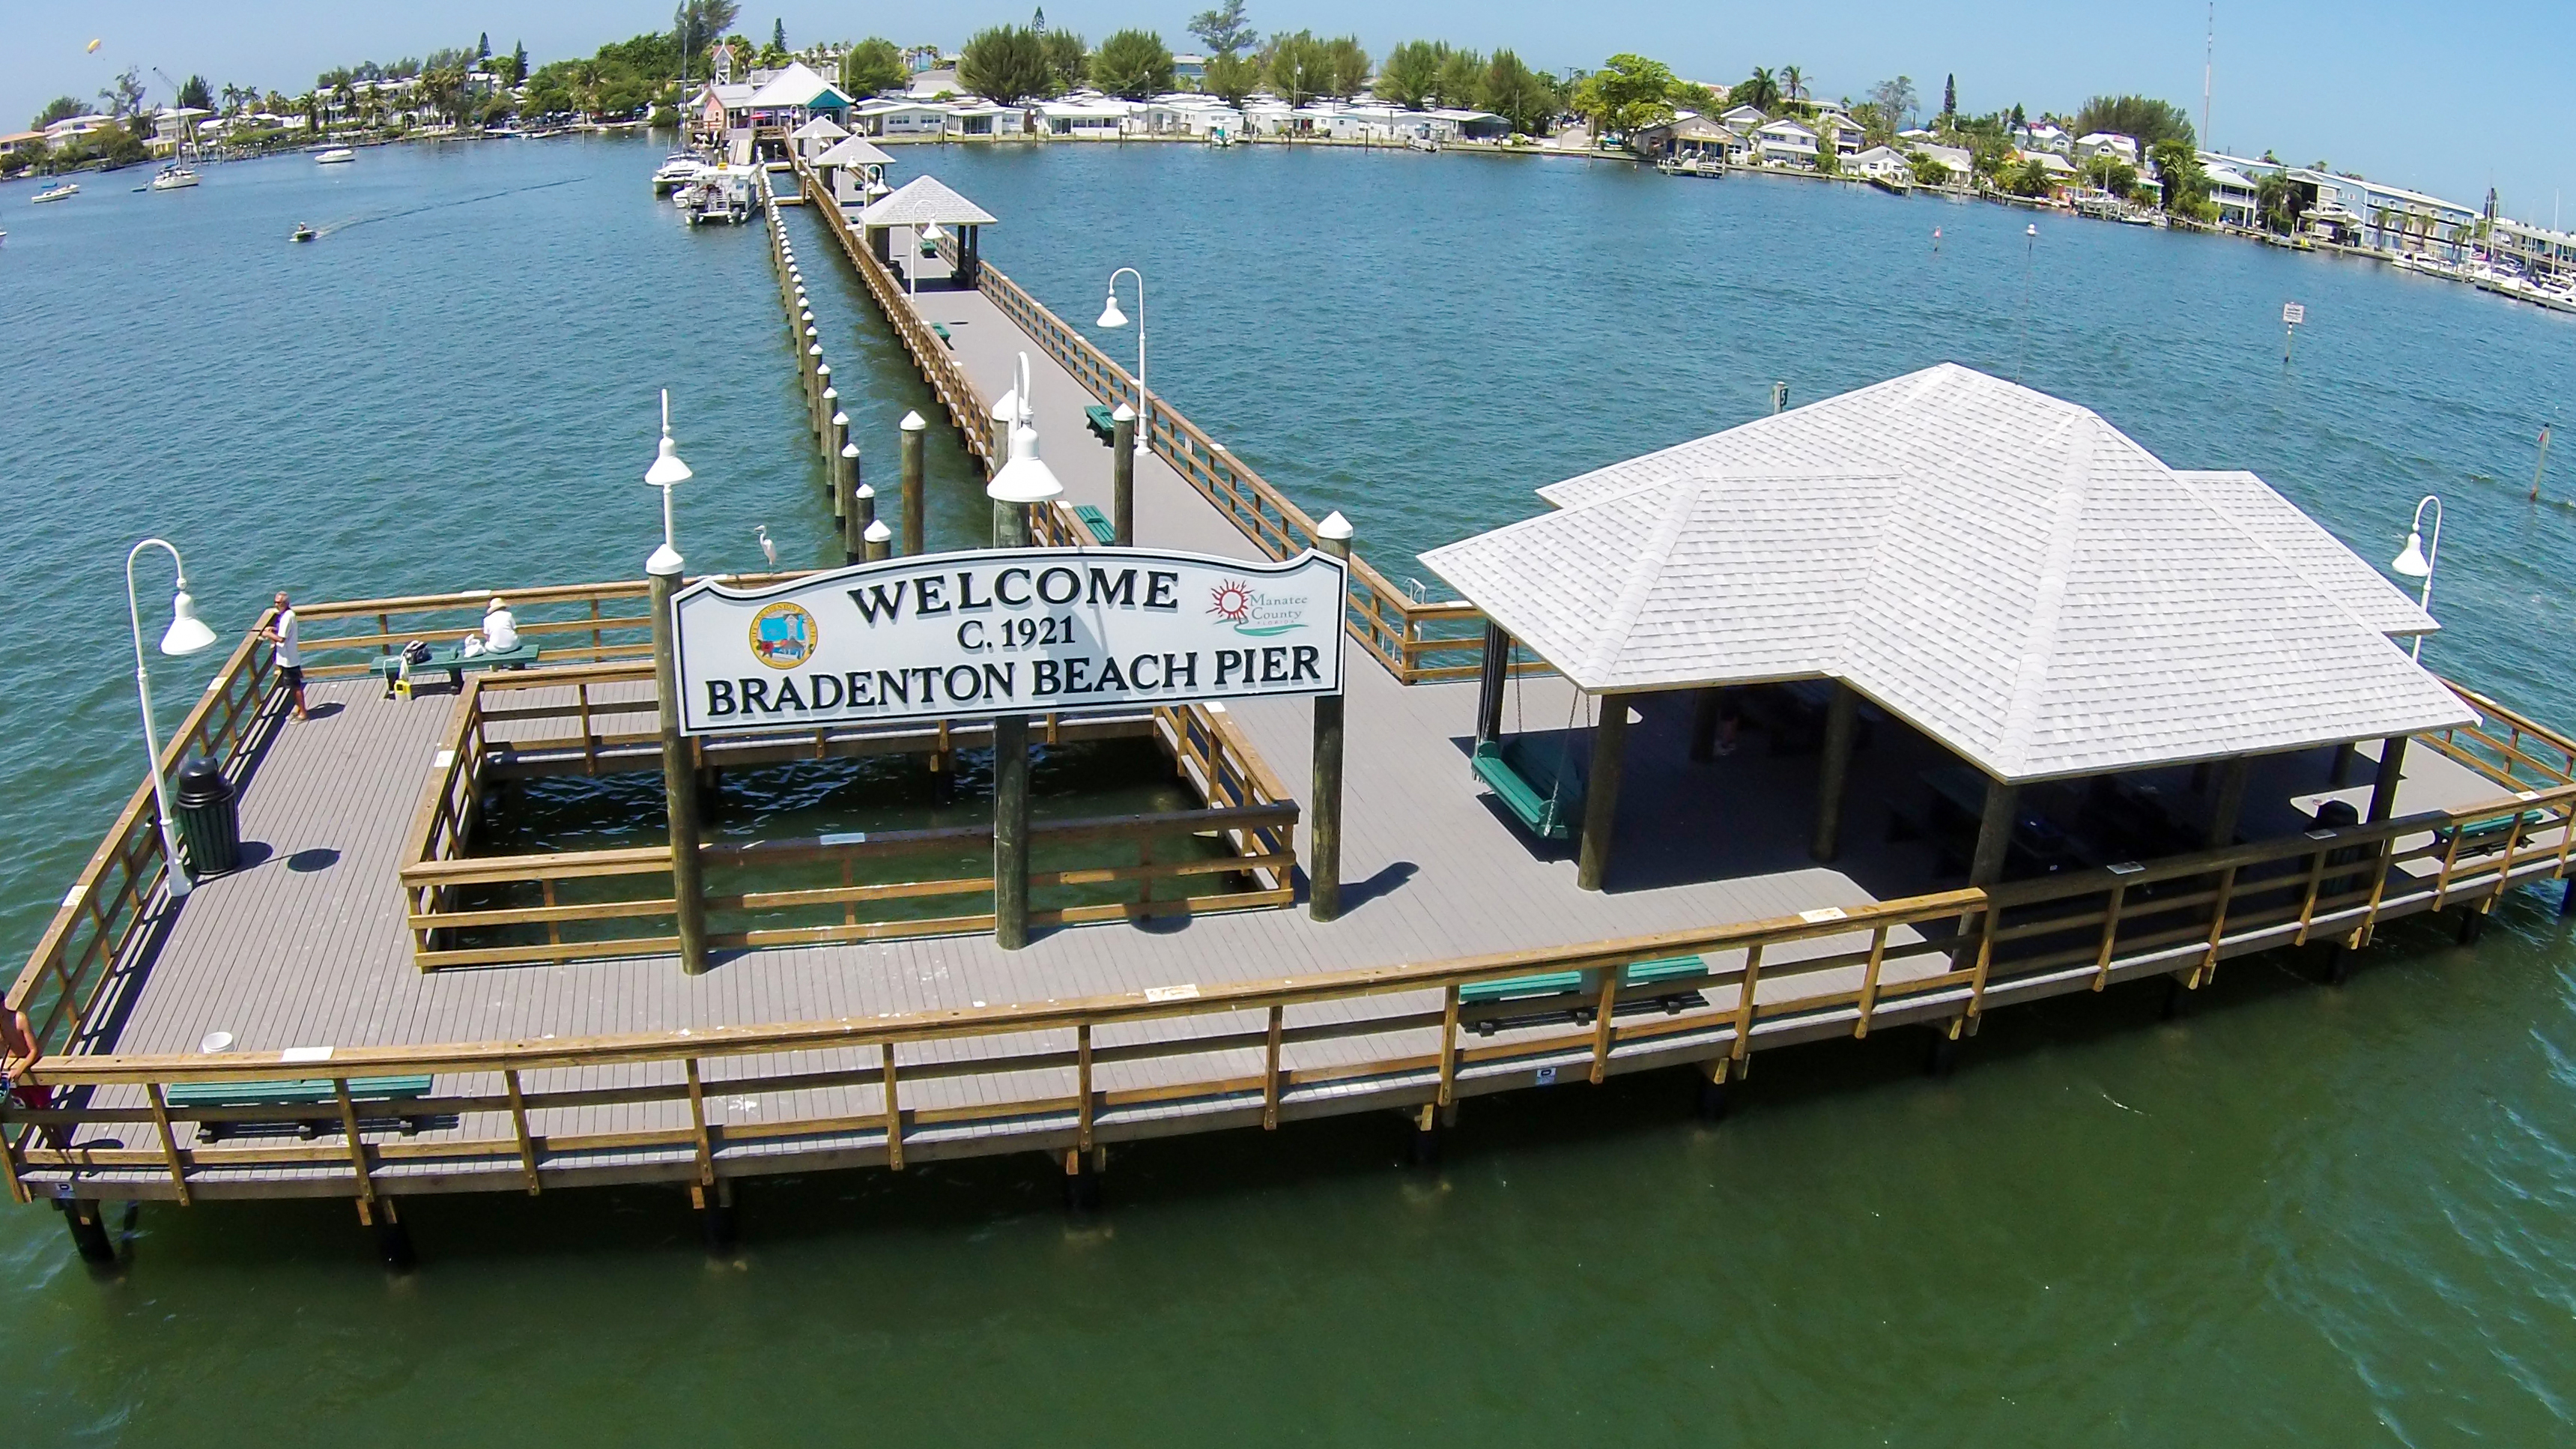 c6gppt97-Bradenton-BEACH